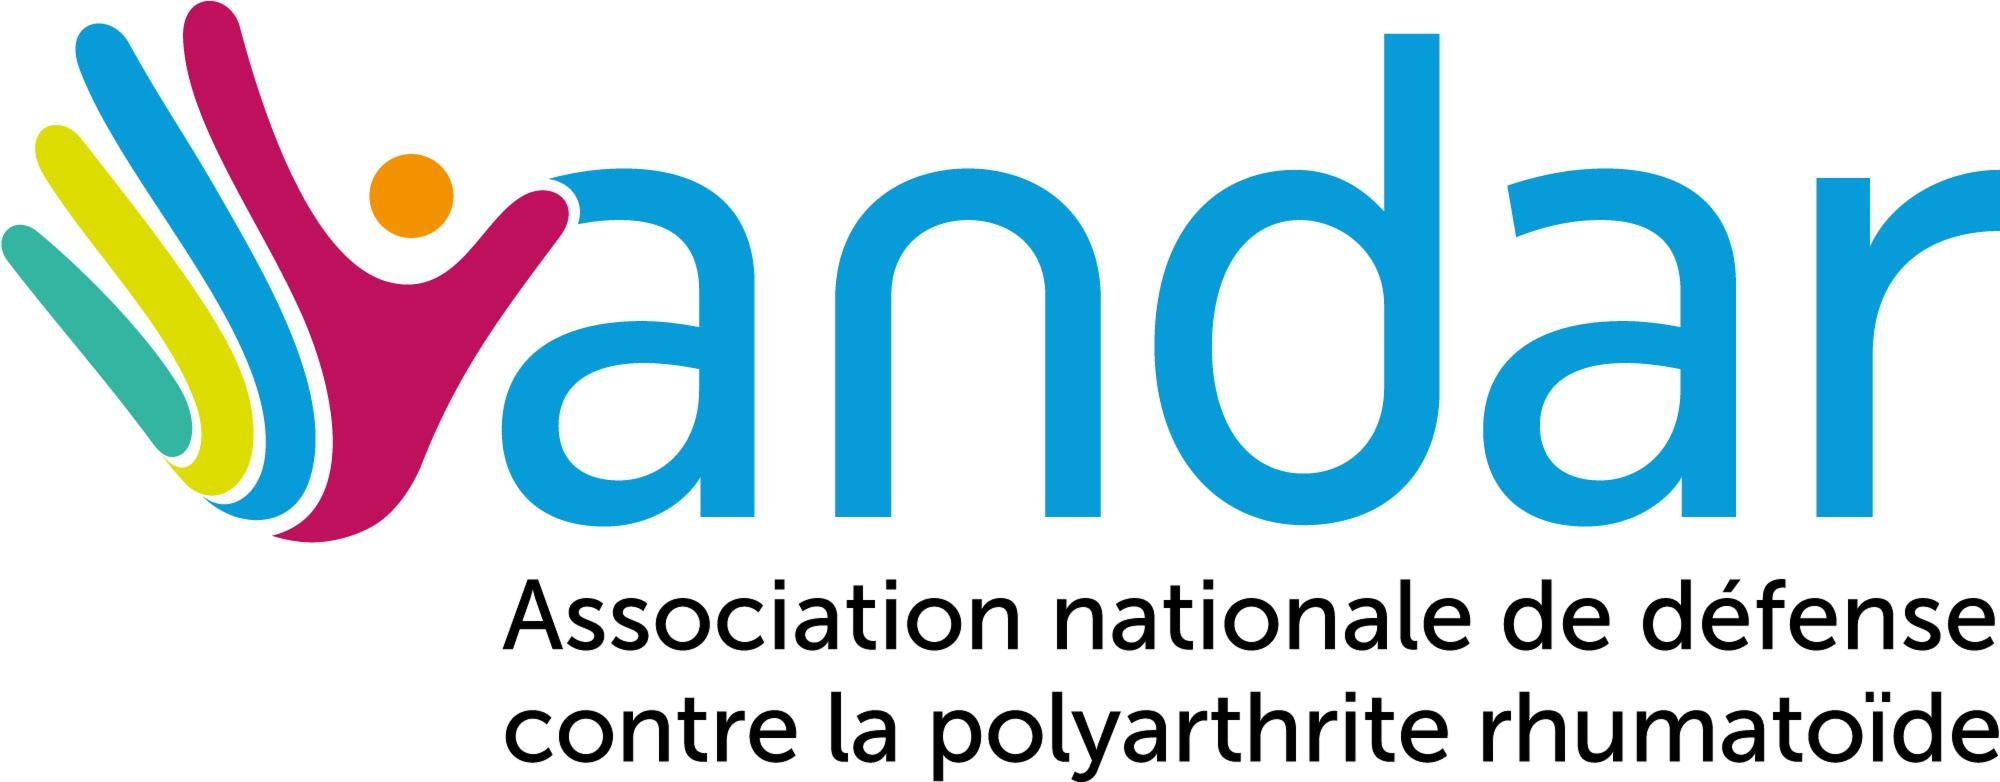 Association Nationale de Défense contre l'Arthrite Rhumatoïde